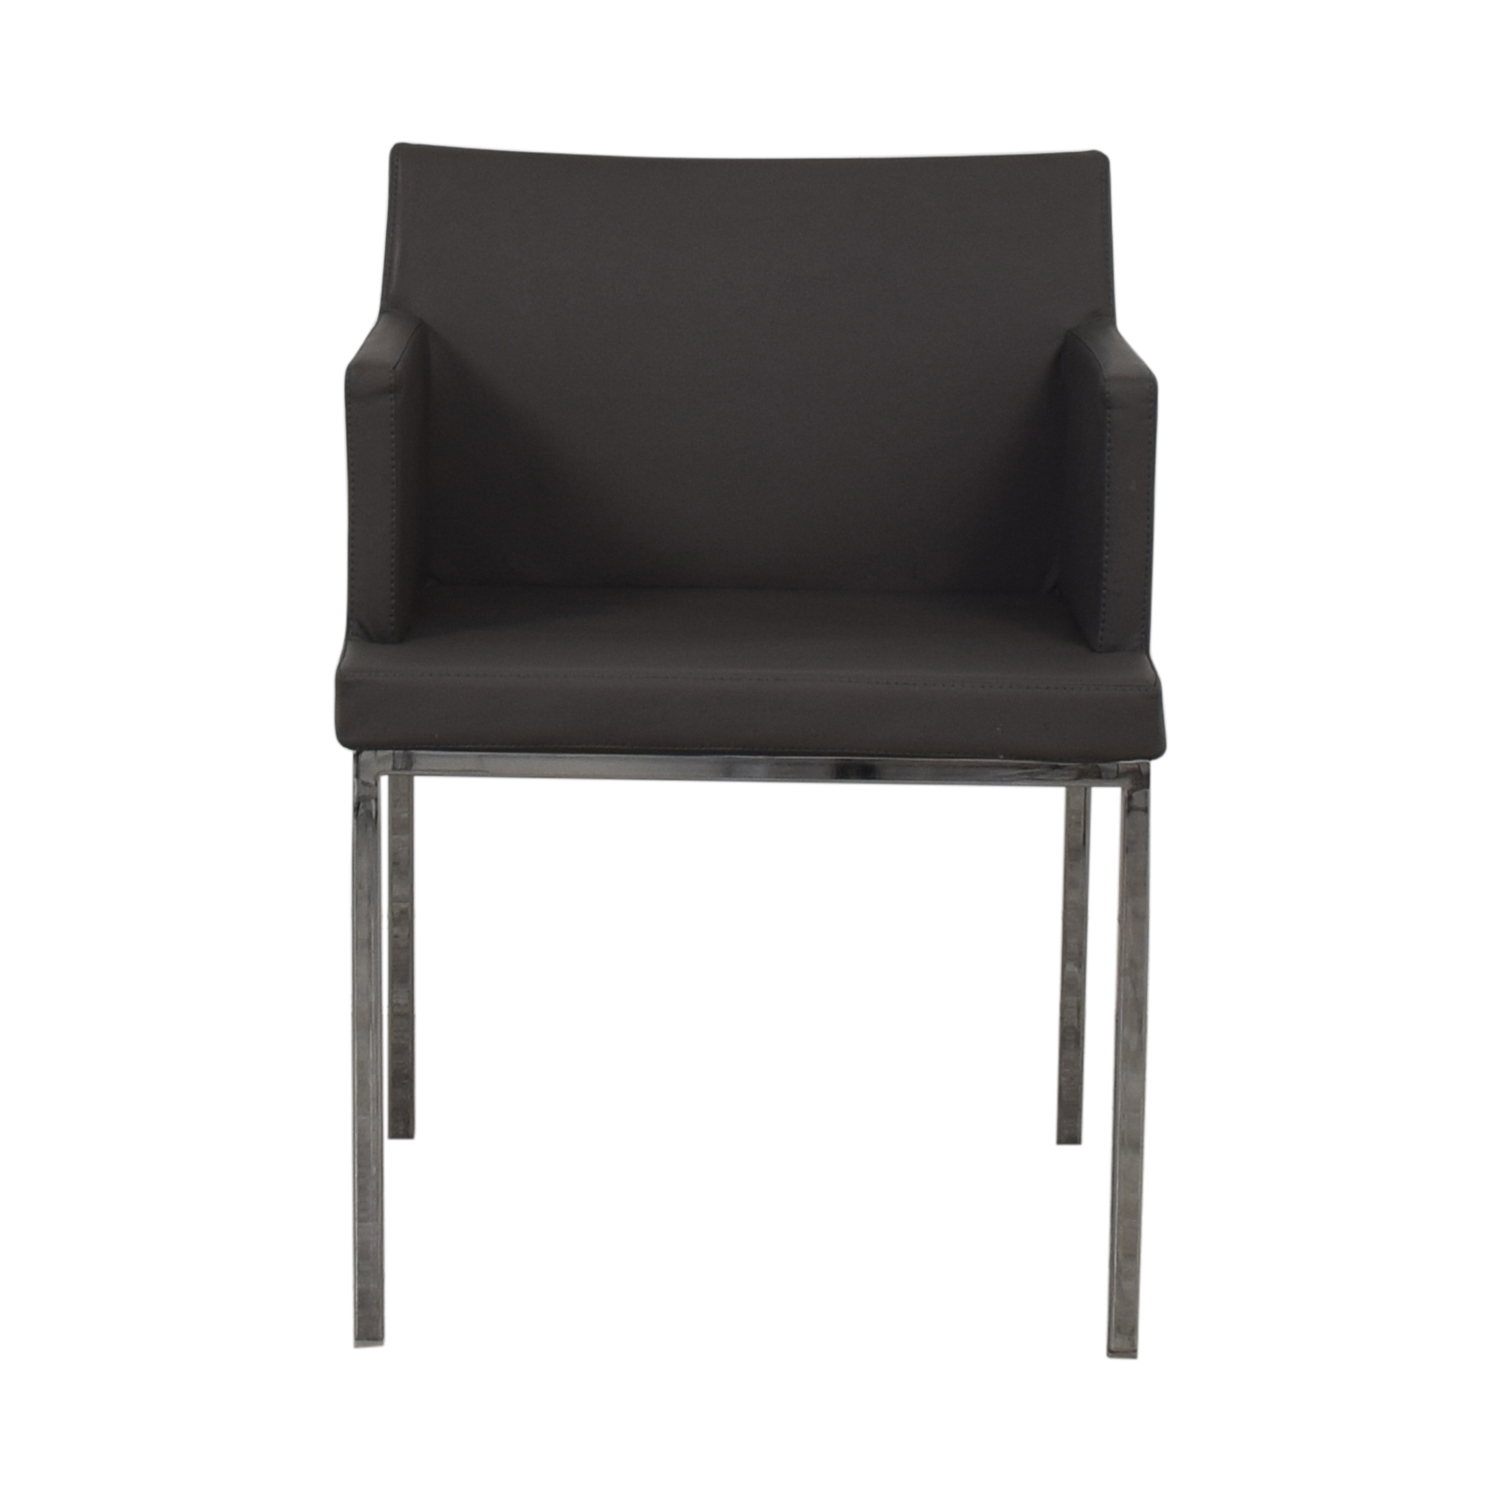 Lazzoni Leather Chrome Chair Lazzoni